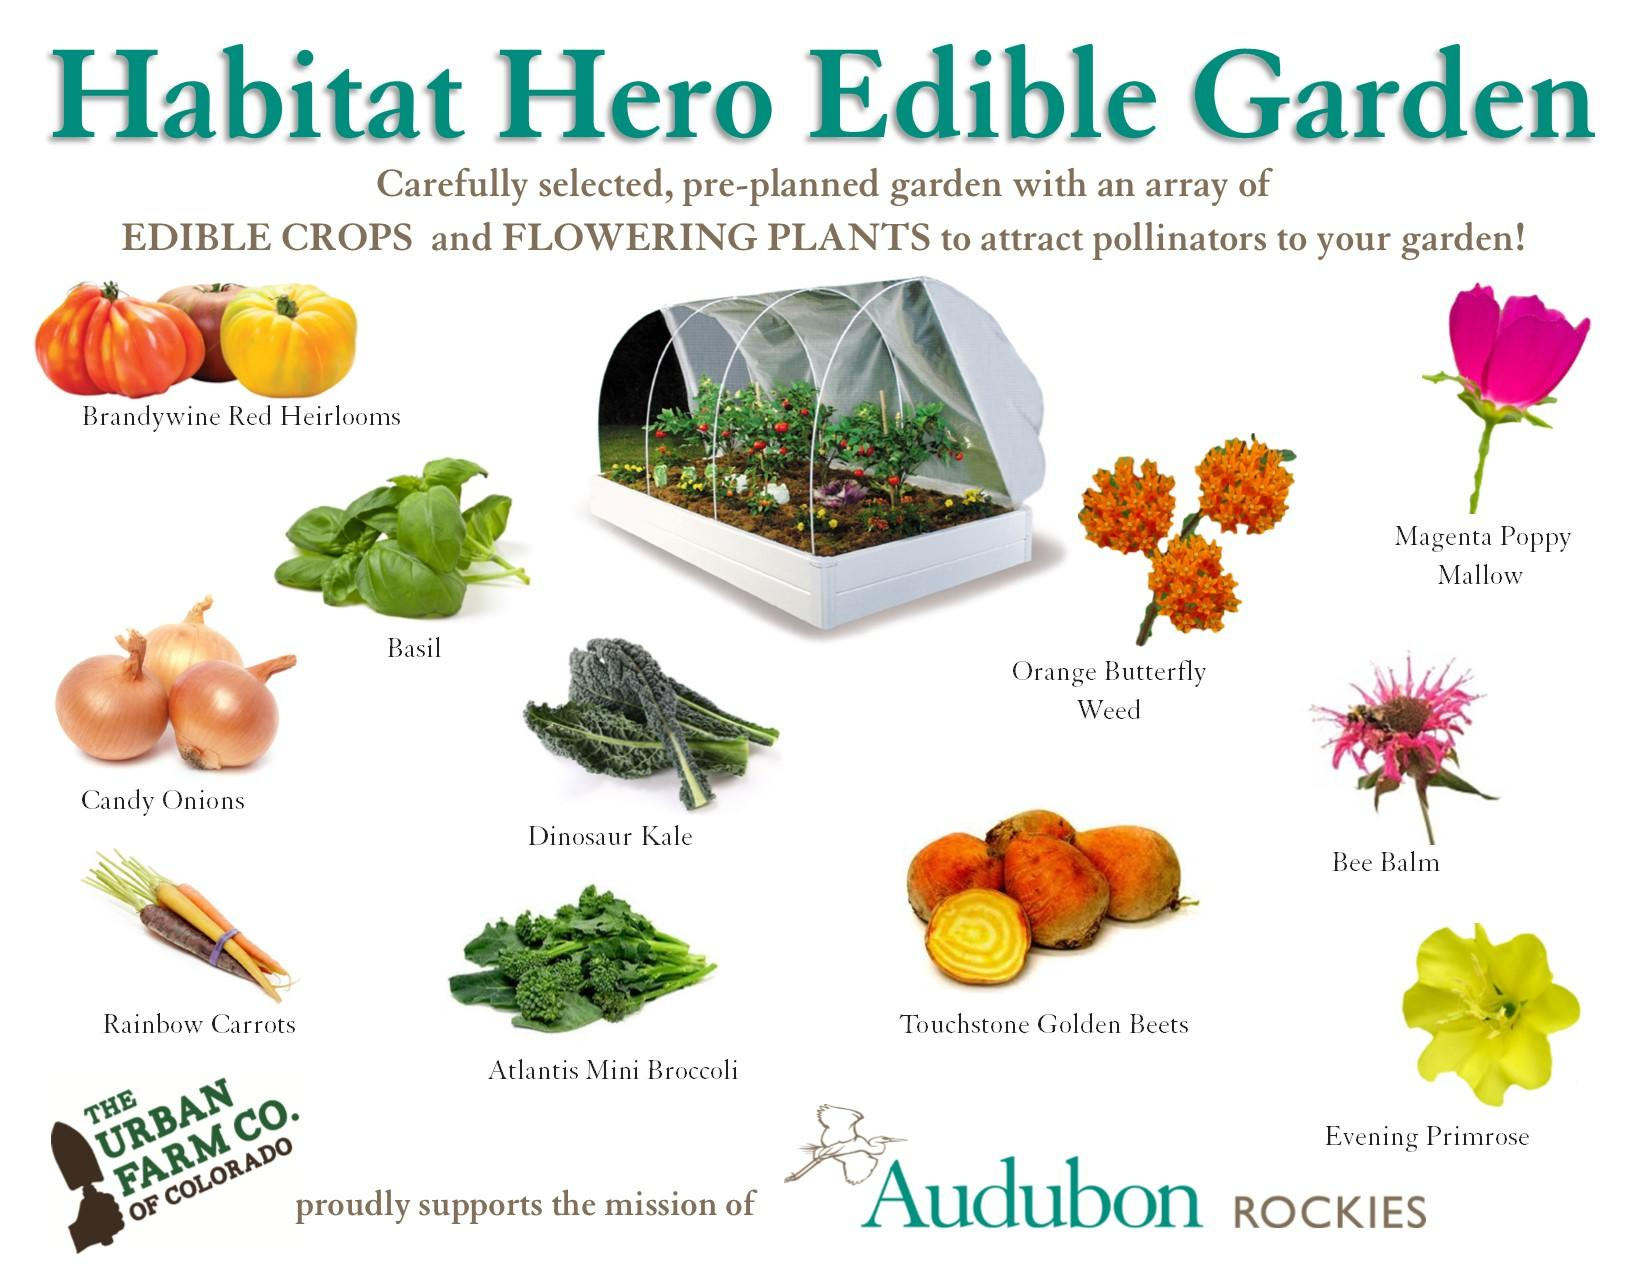 Habitat Hero Edible Garden Audubon Rockies